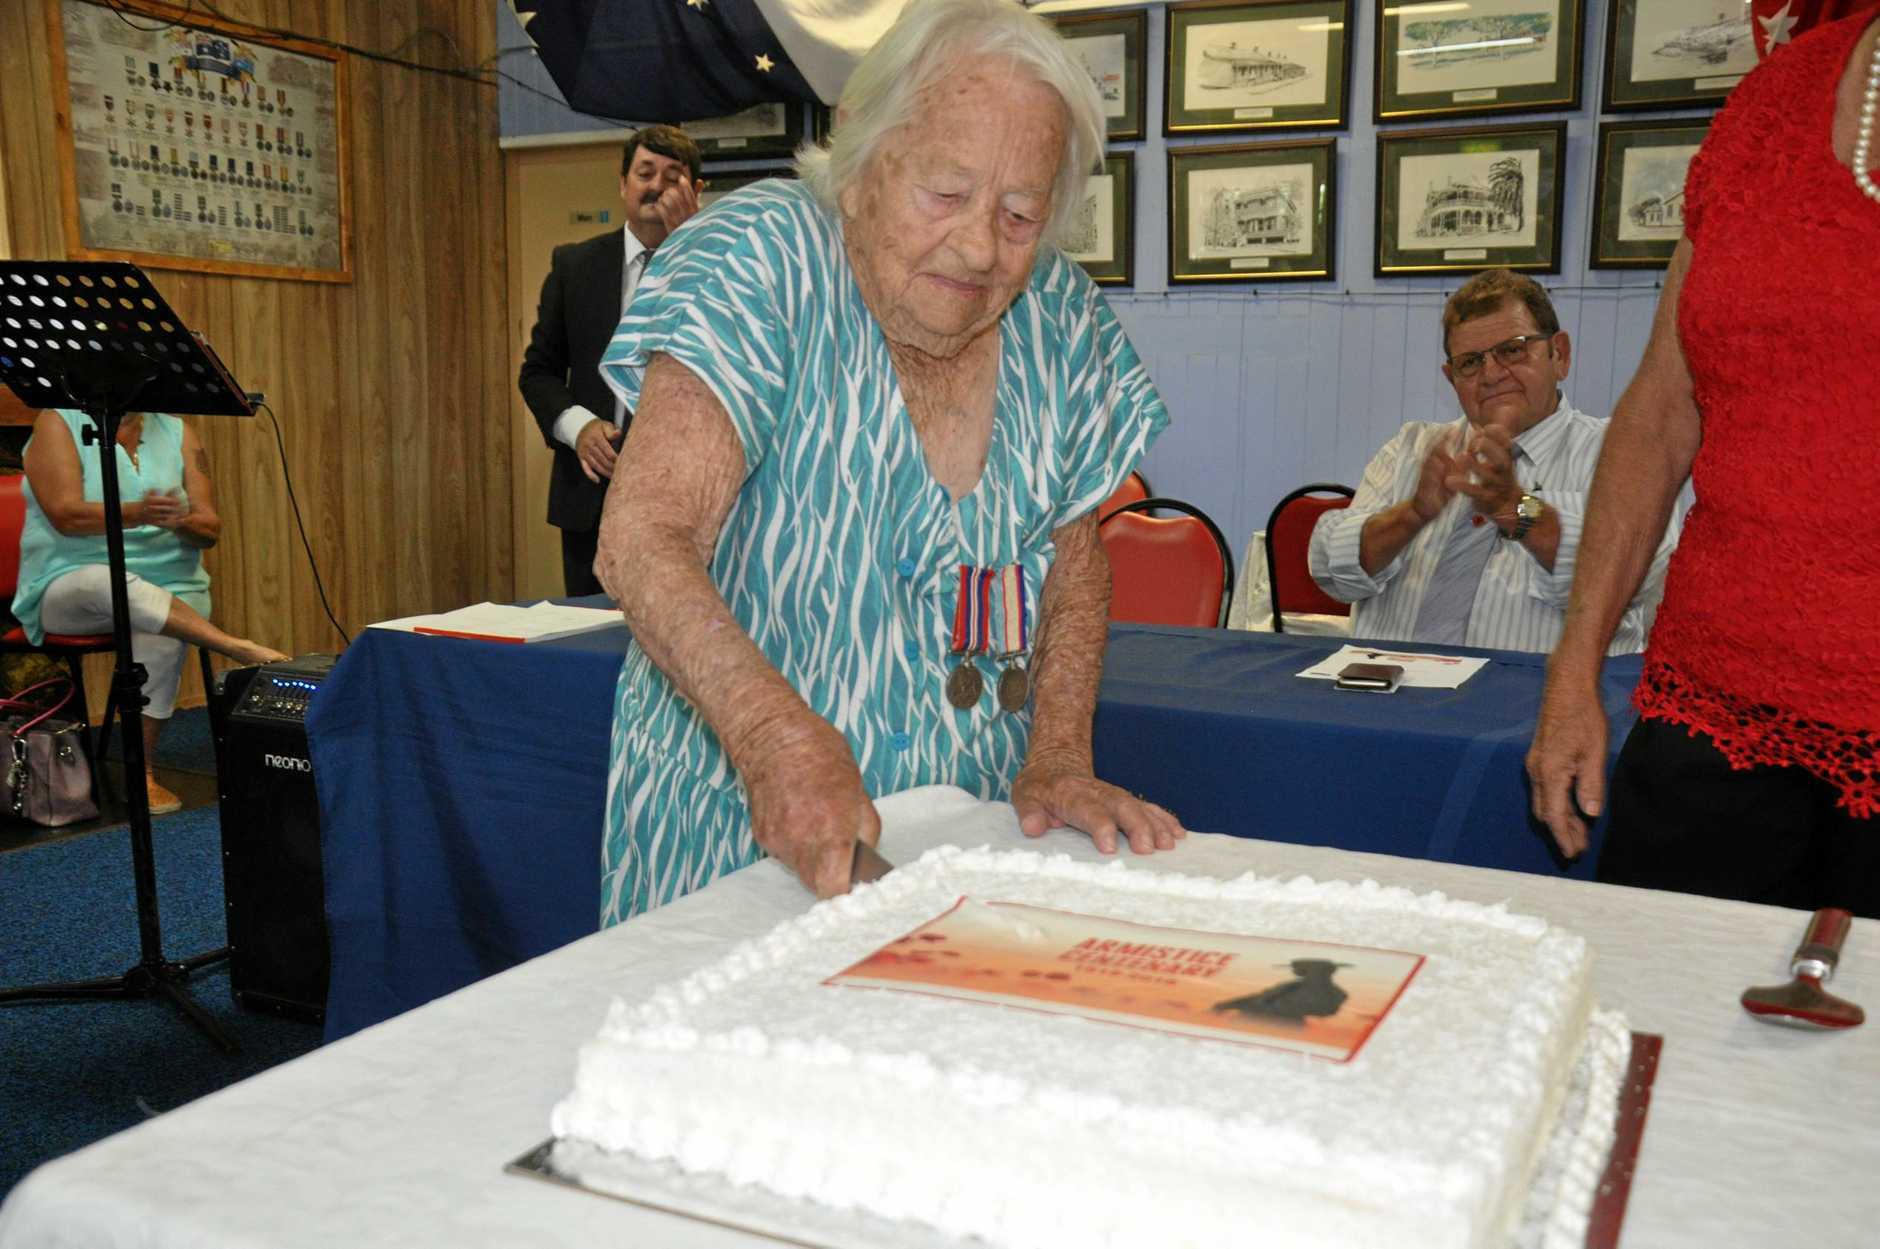 98-year-old Vashti Grubb was asked to cut the centenary cake at the service.